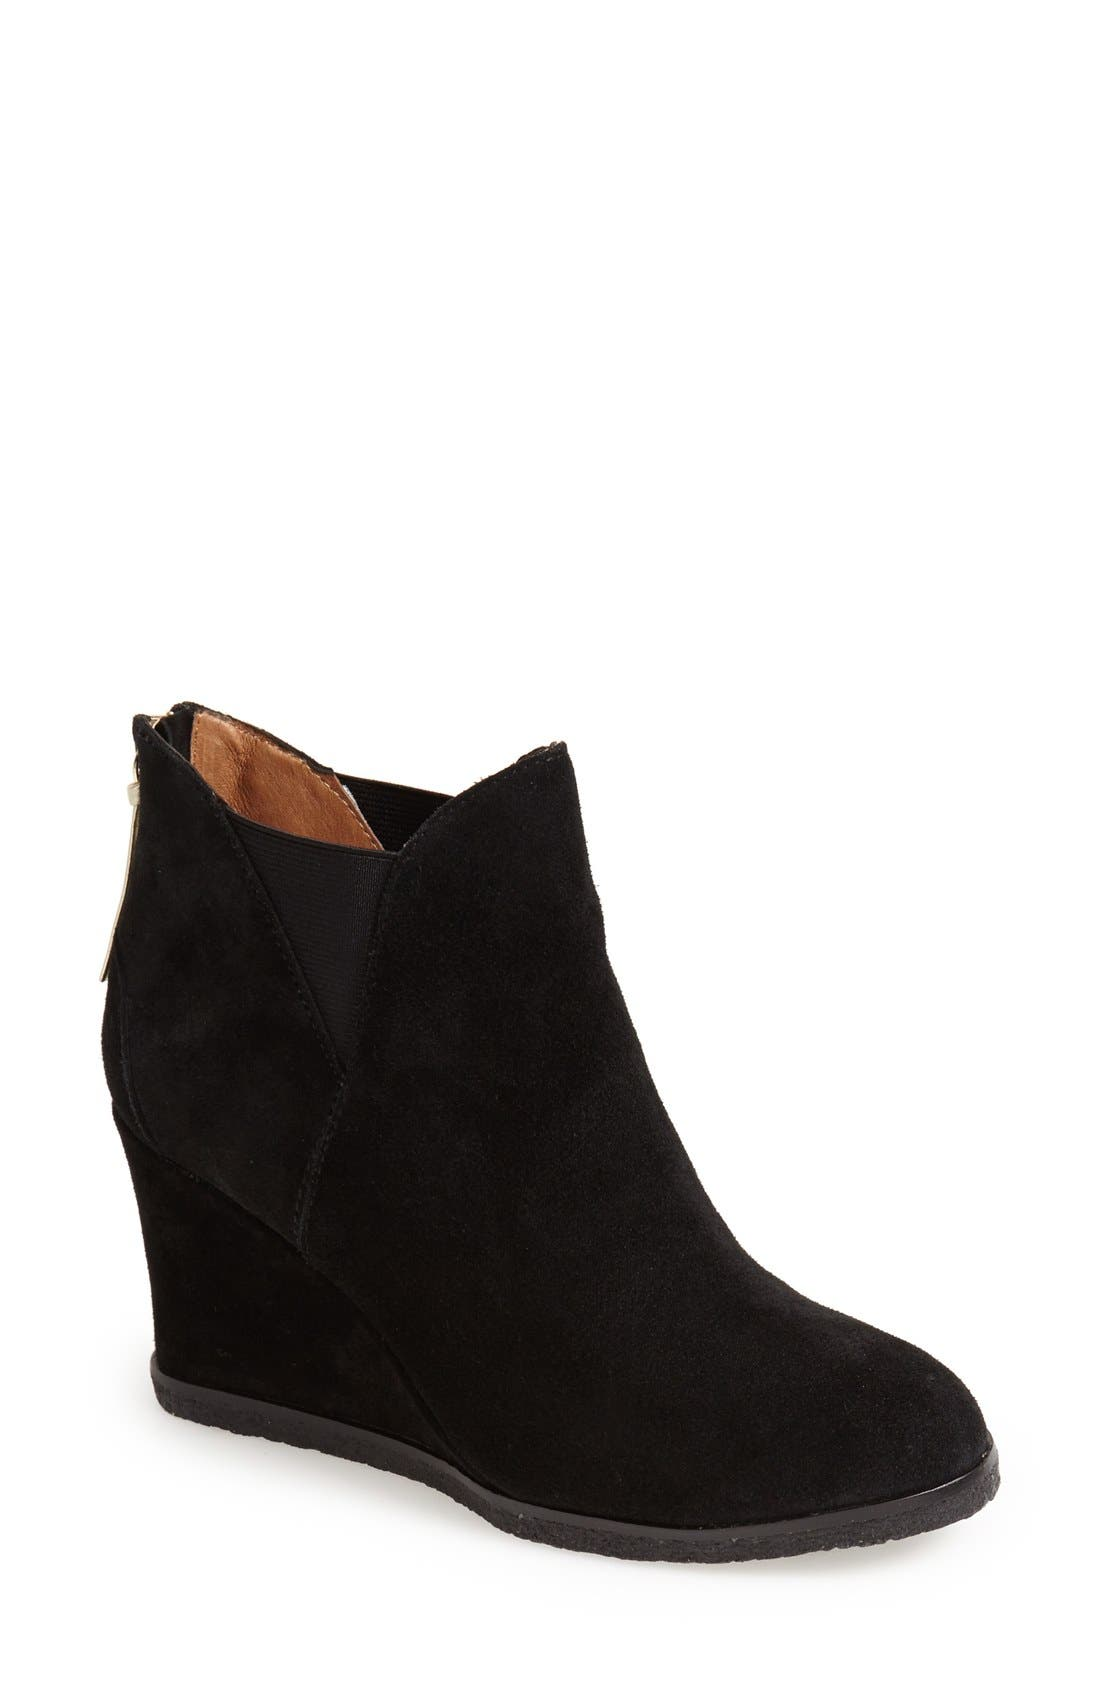 'Zap' Bootie, Main, color, 001